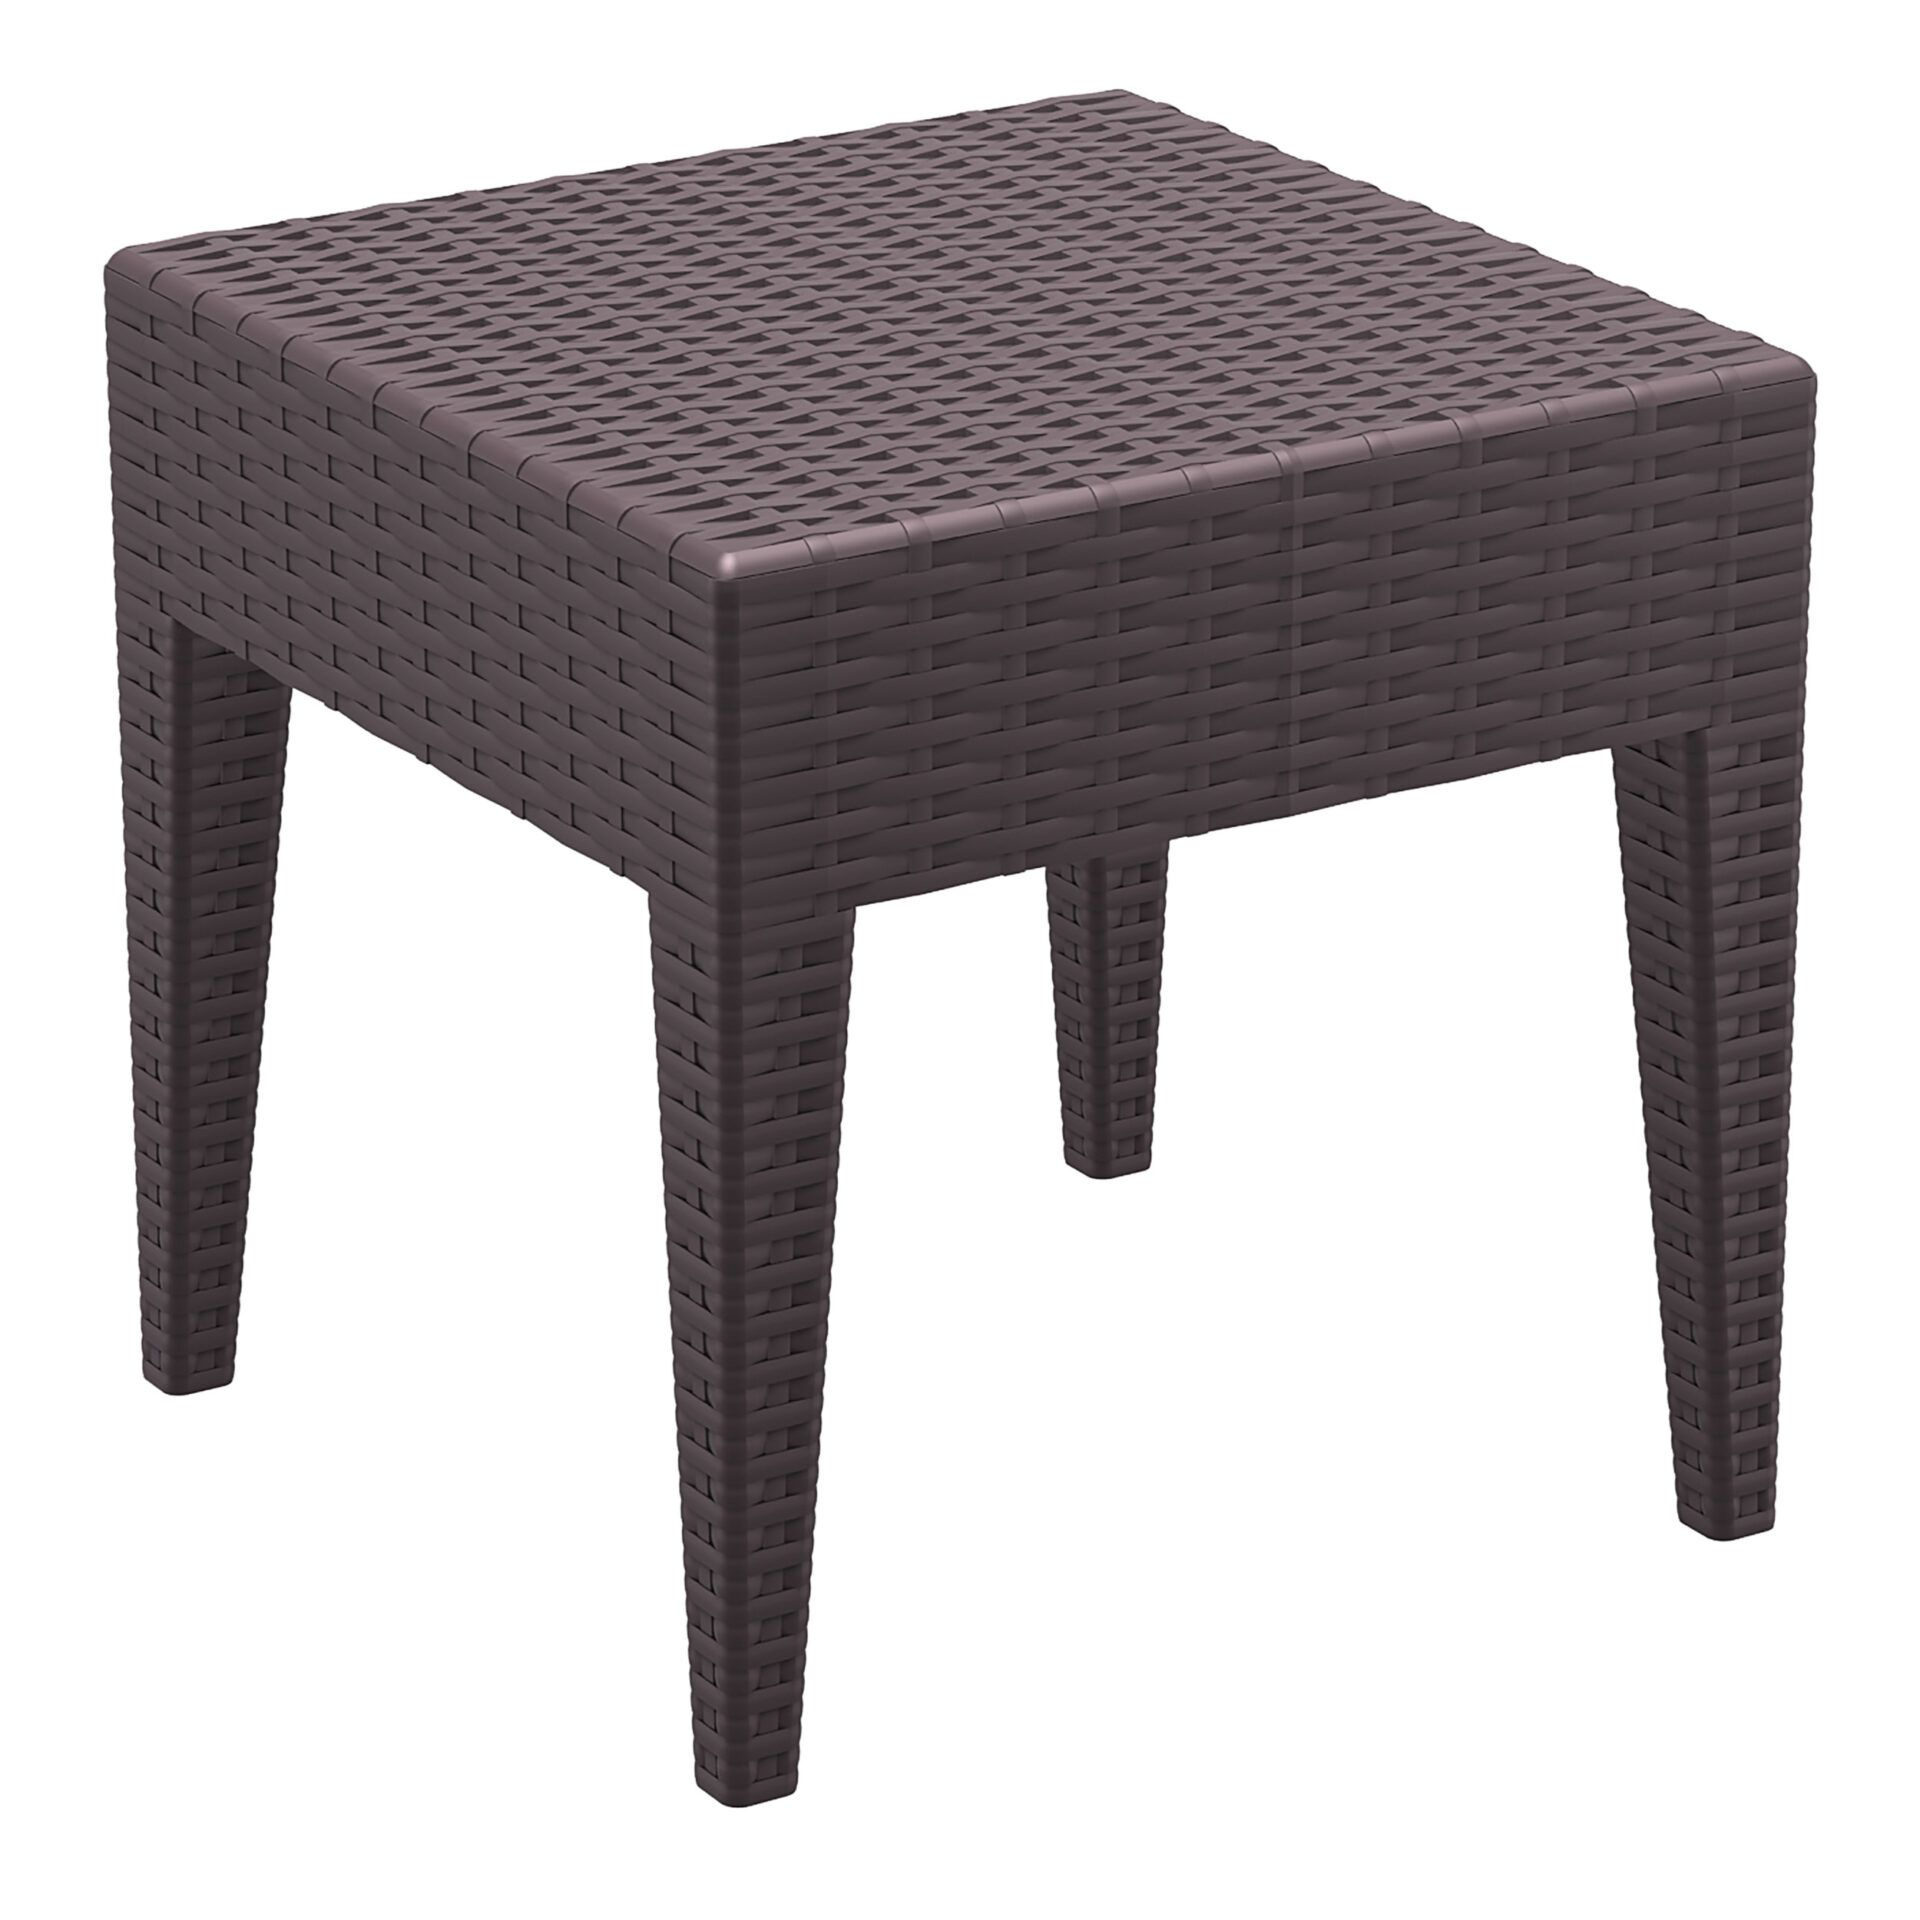 resin rattan miami tequila lounge side table brown front side